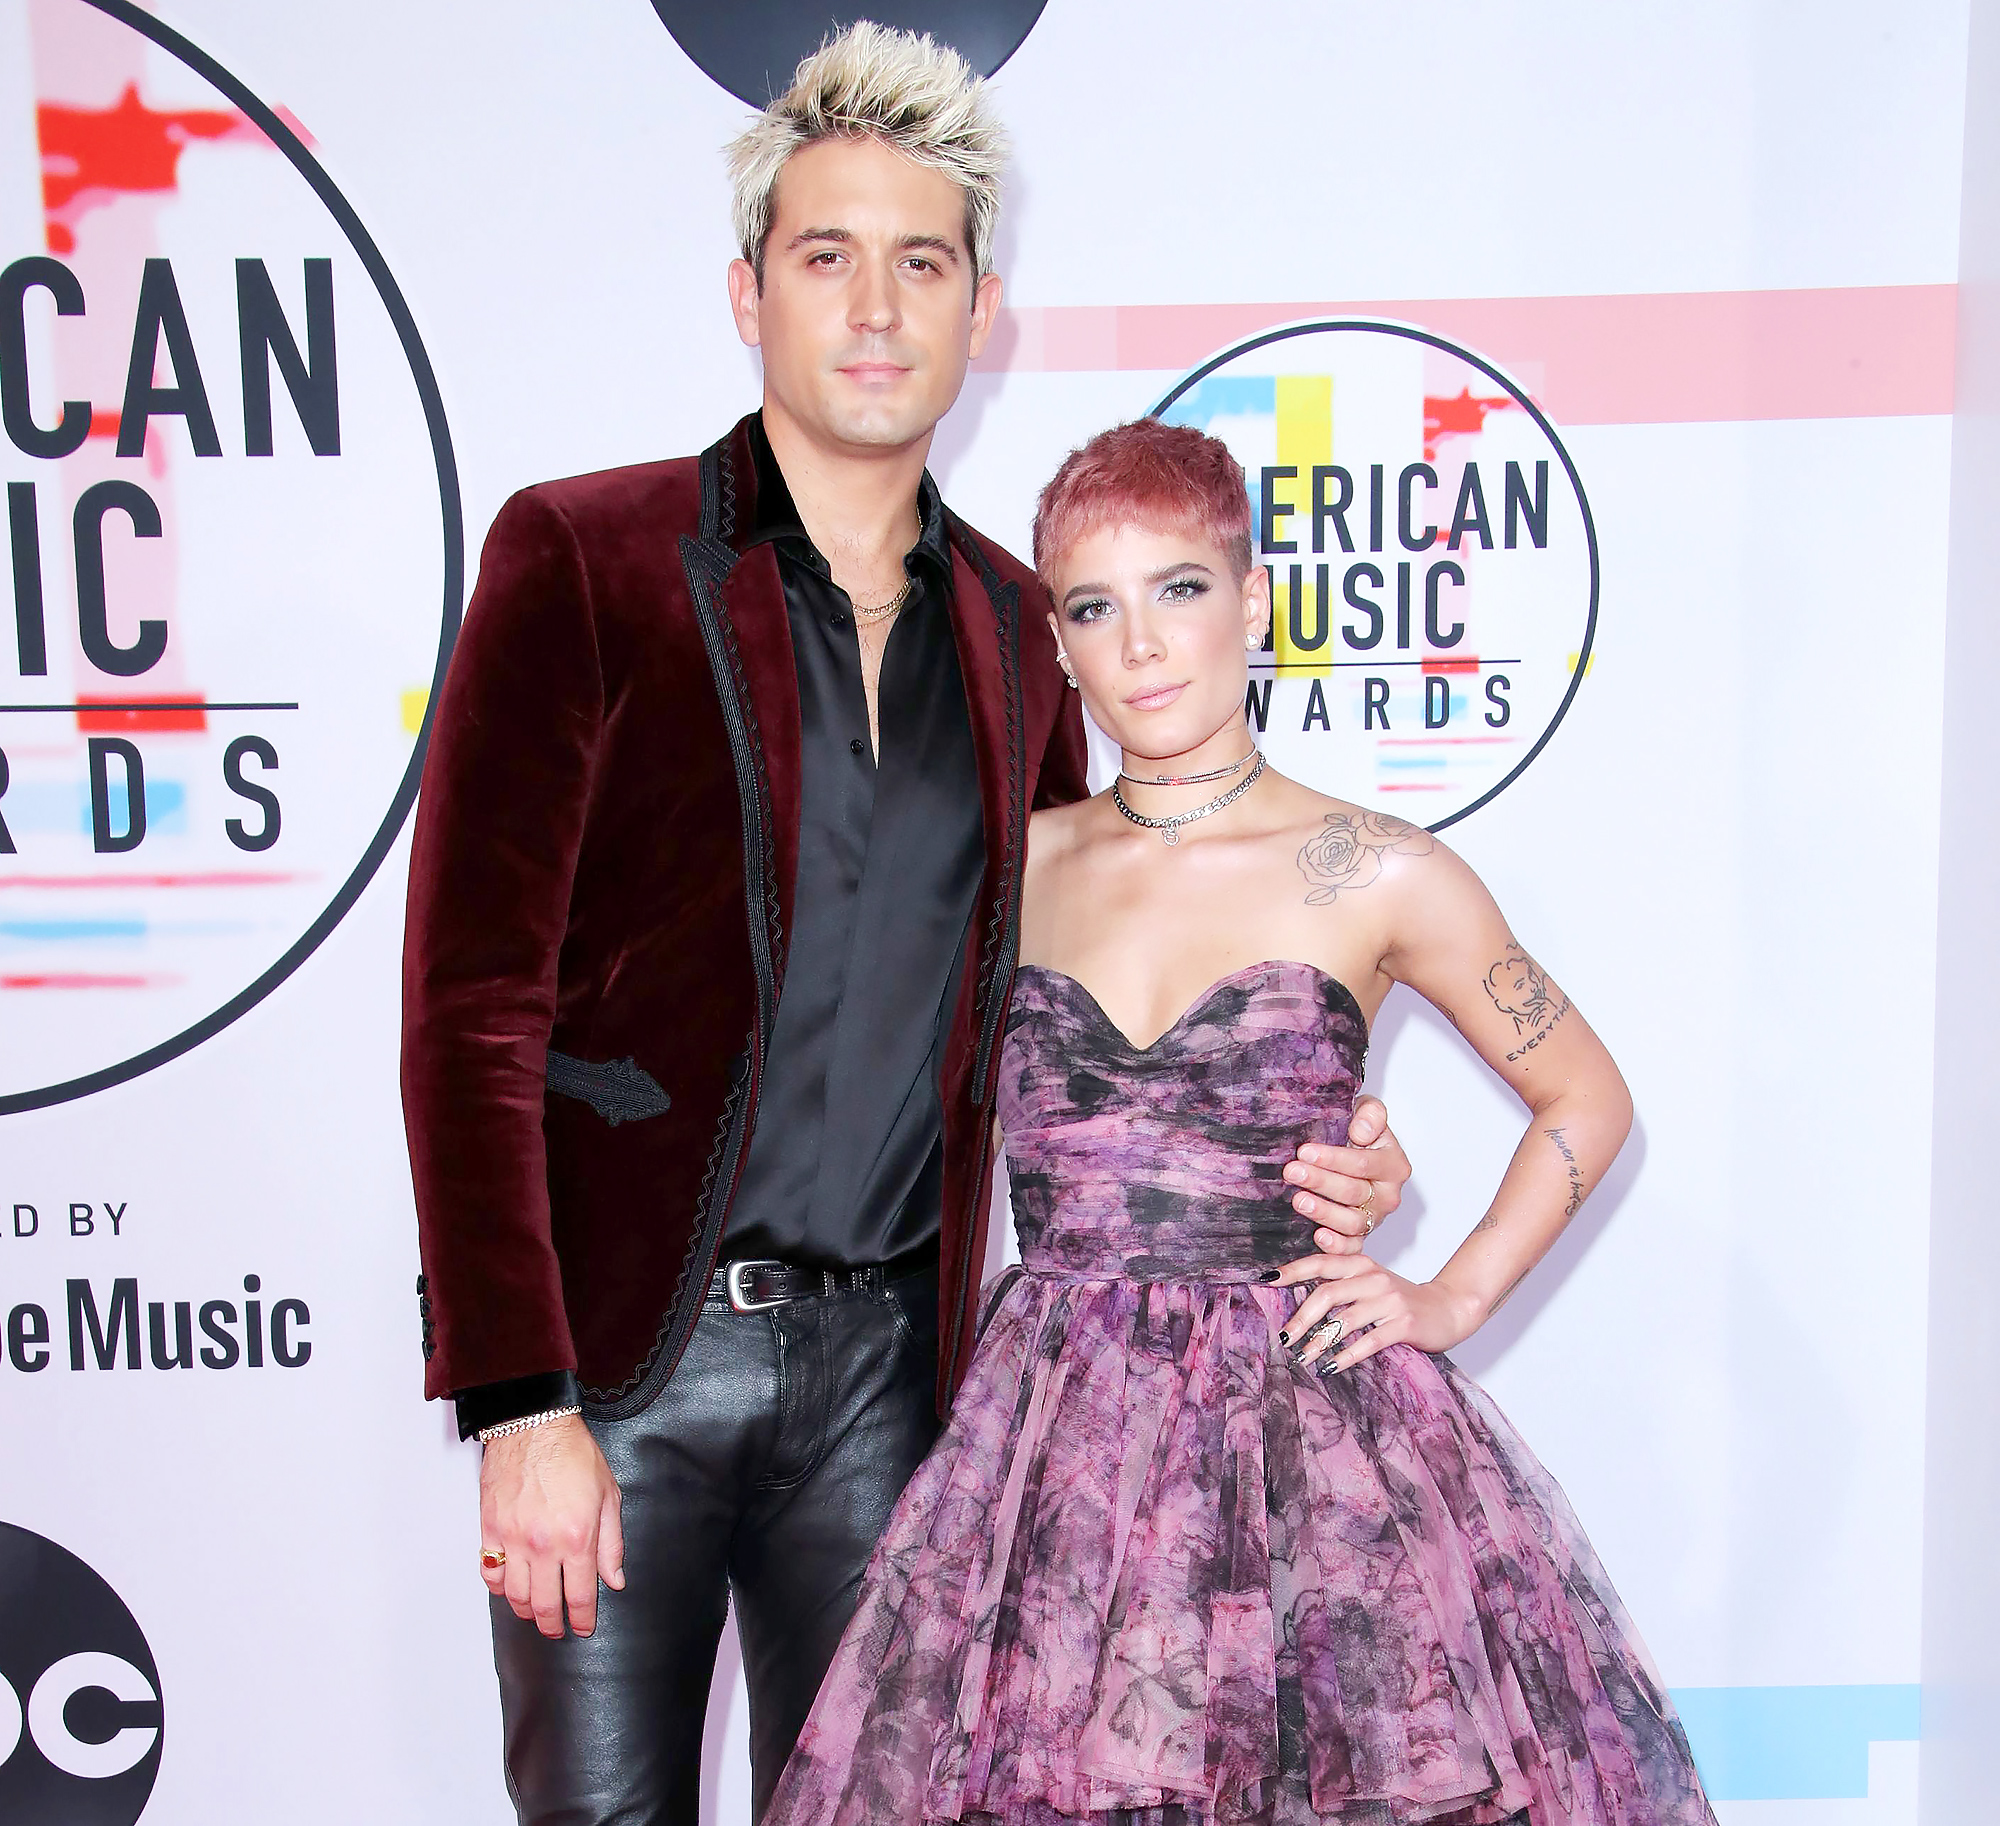 G-Eazy Seemingly Shades Ex-Girlfriend Halsey in 'Had Enough' Song